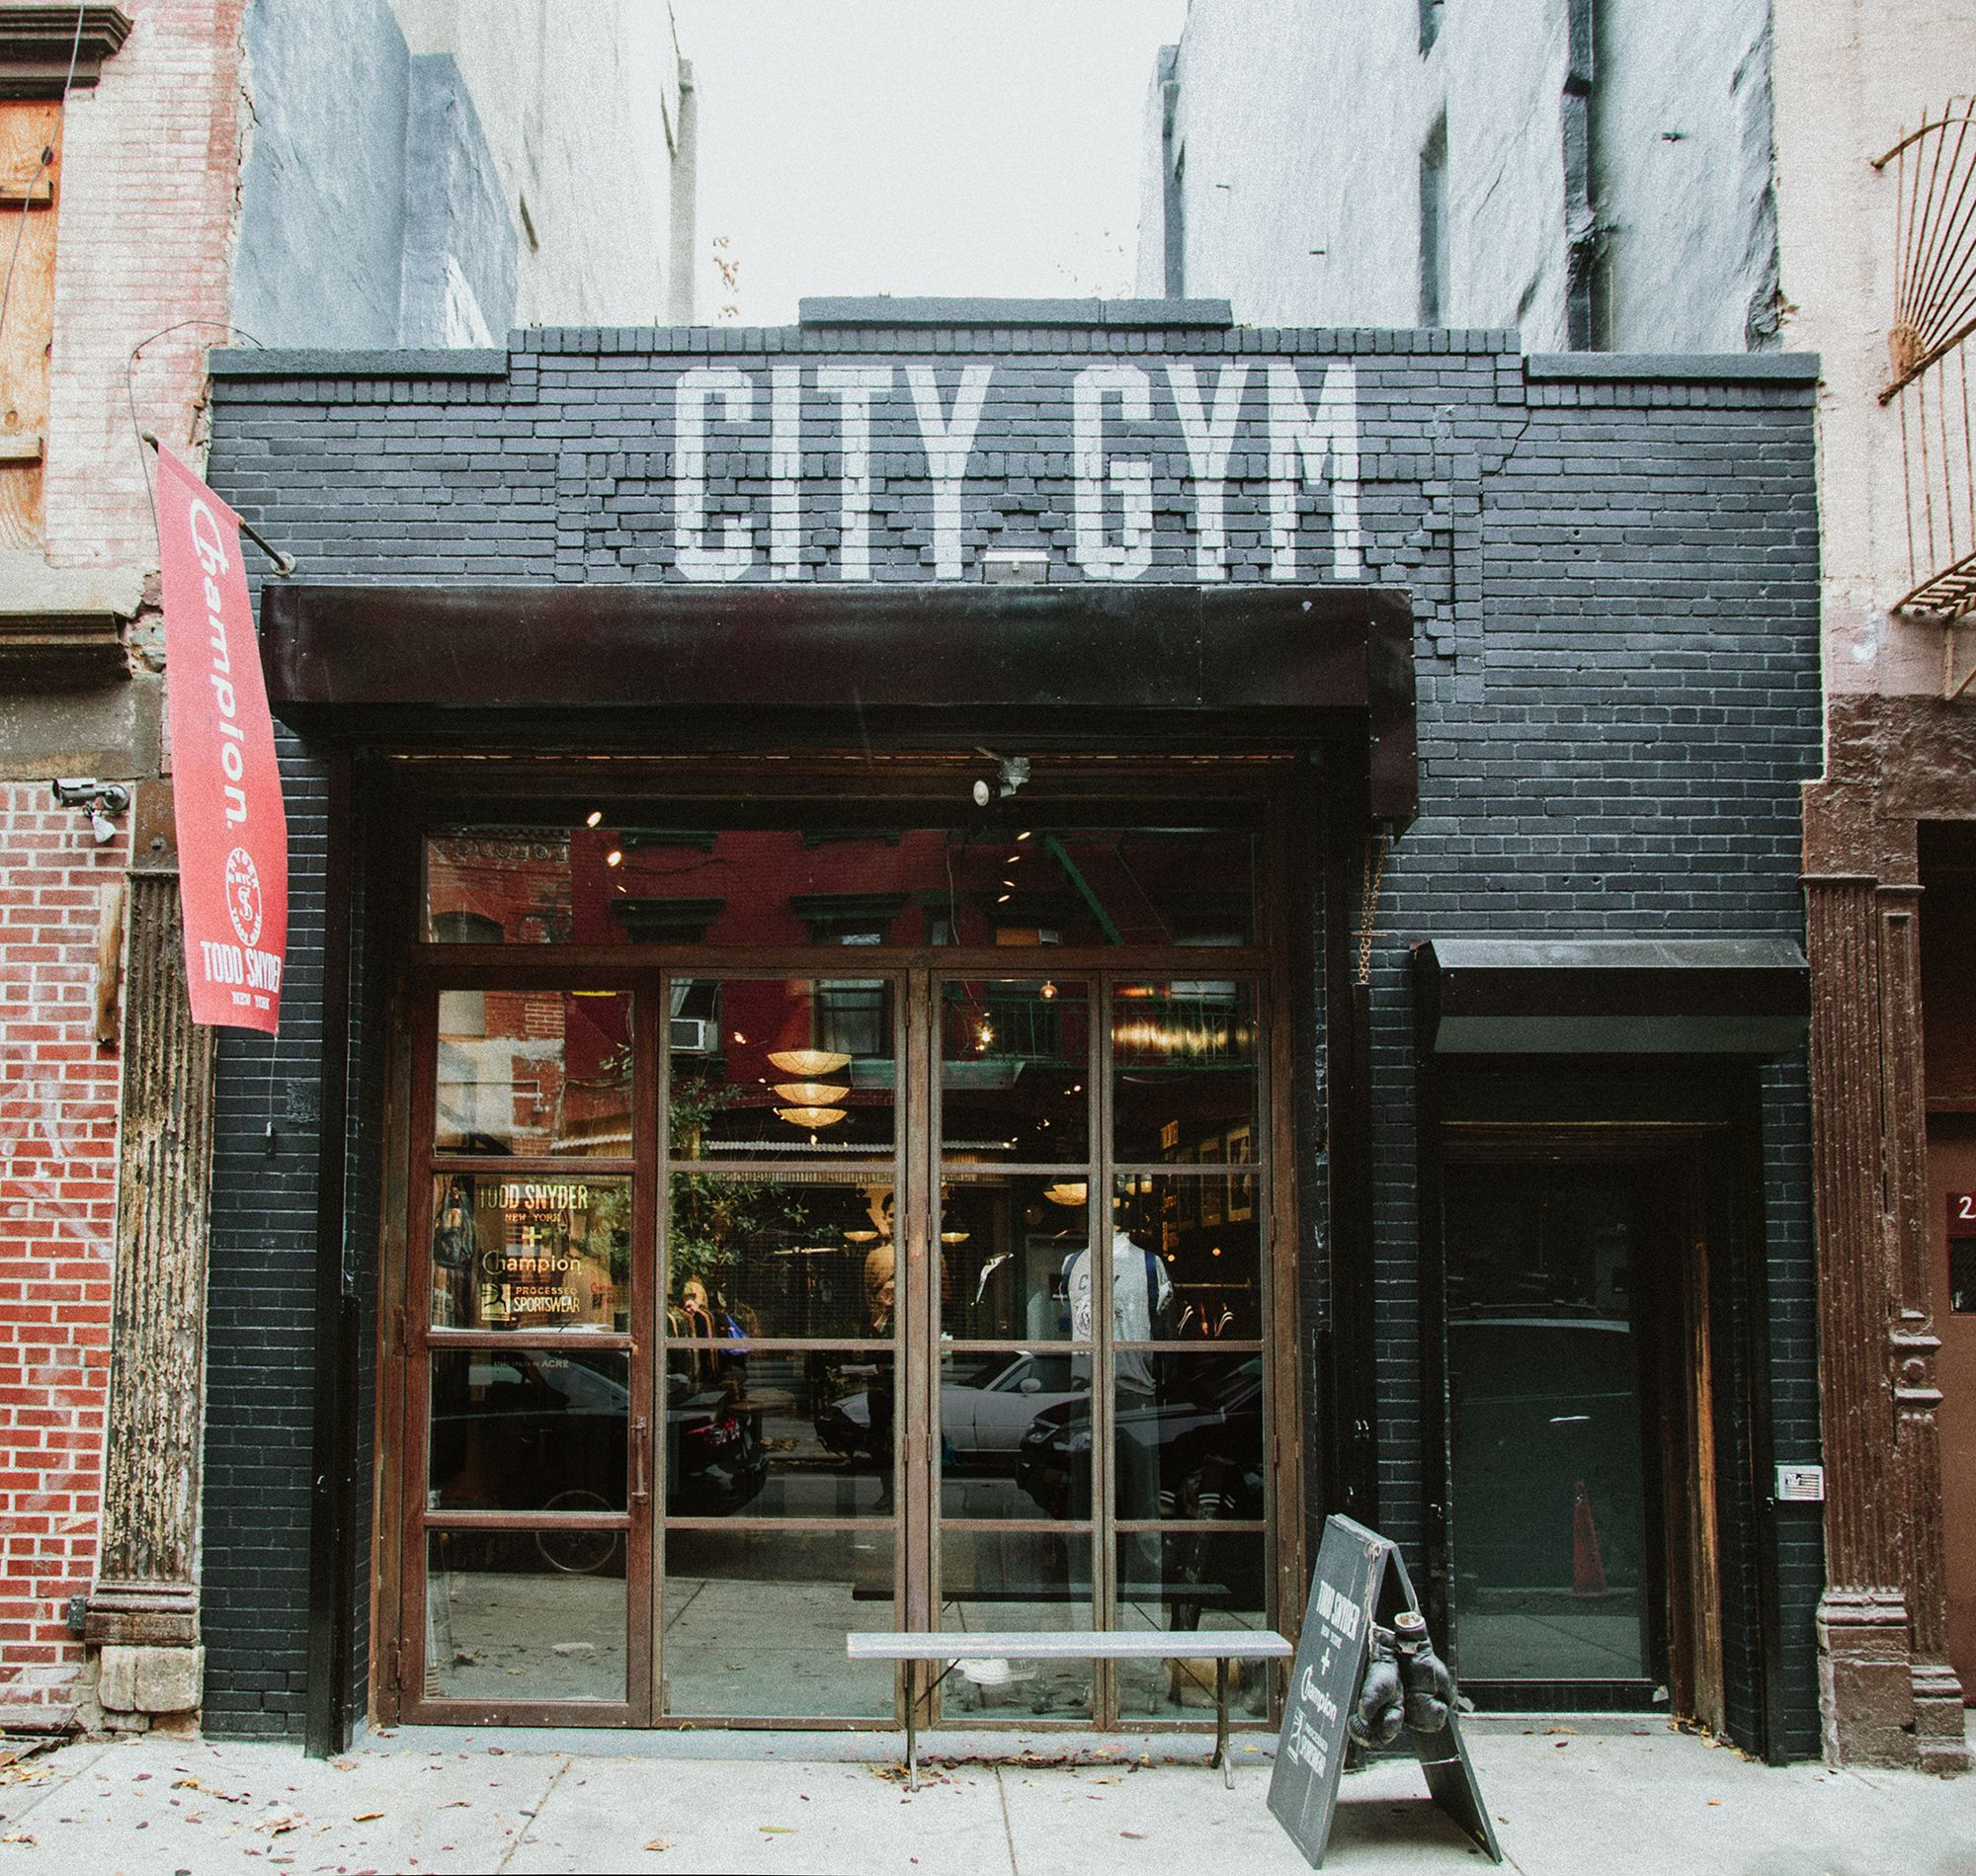 Todd snyder quot city gym in nyc store pinterest